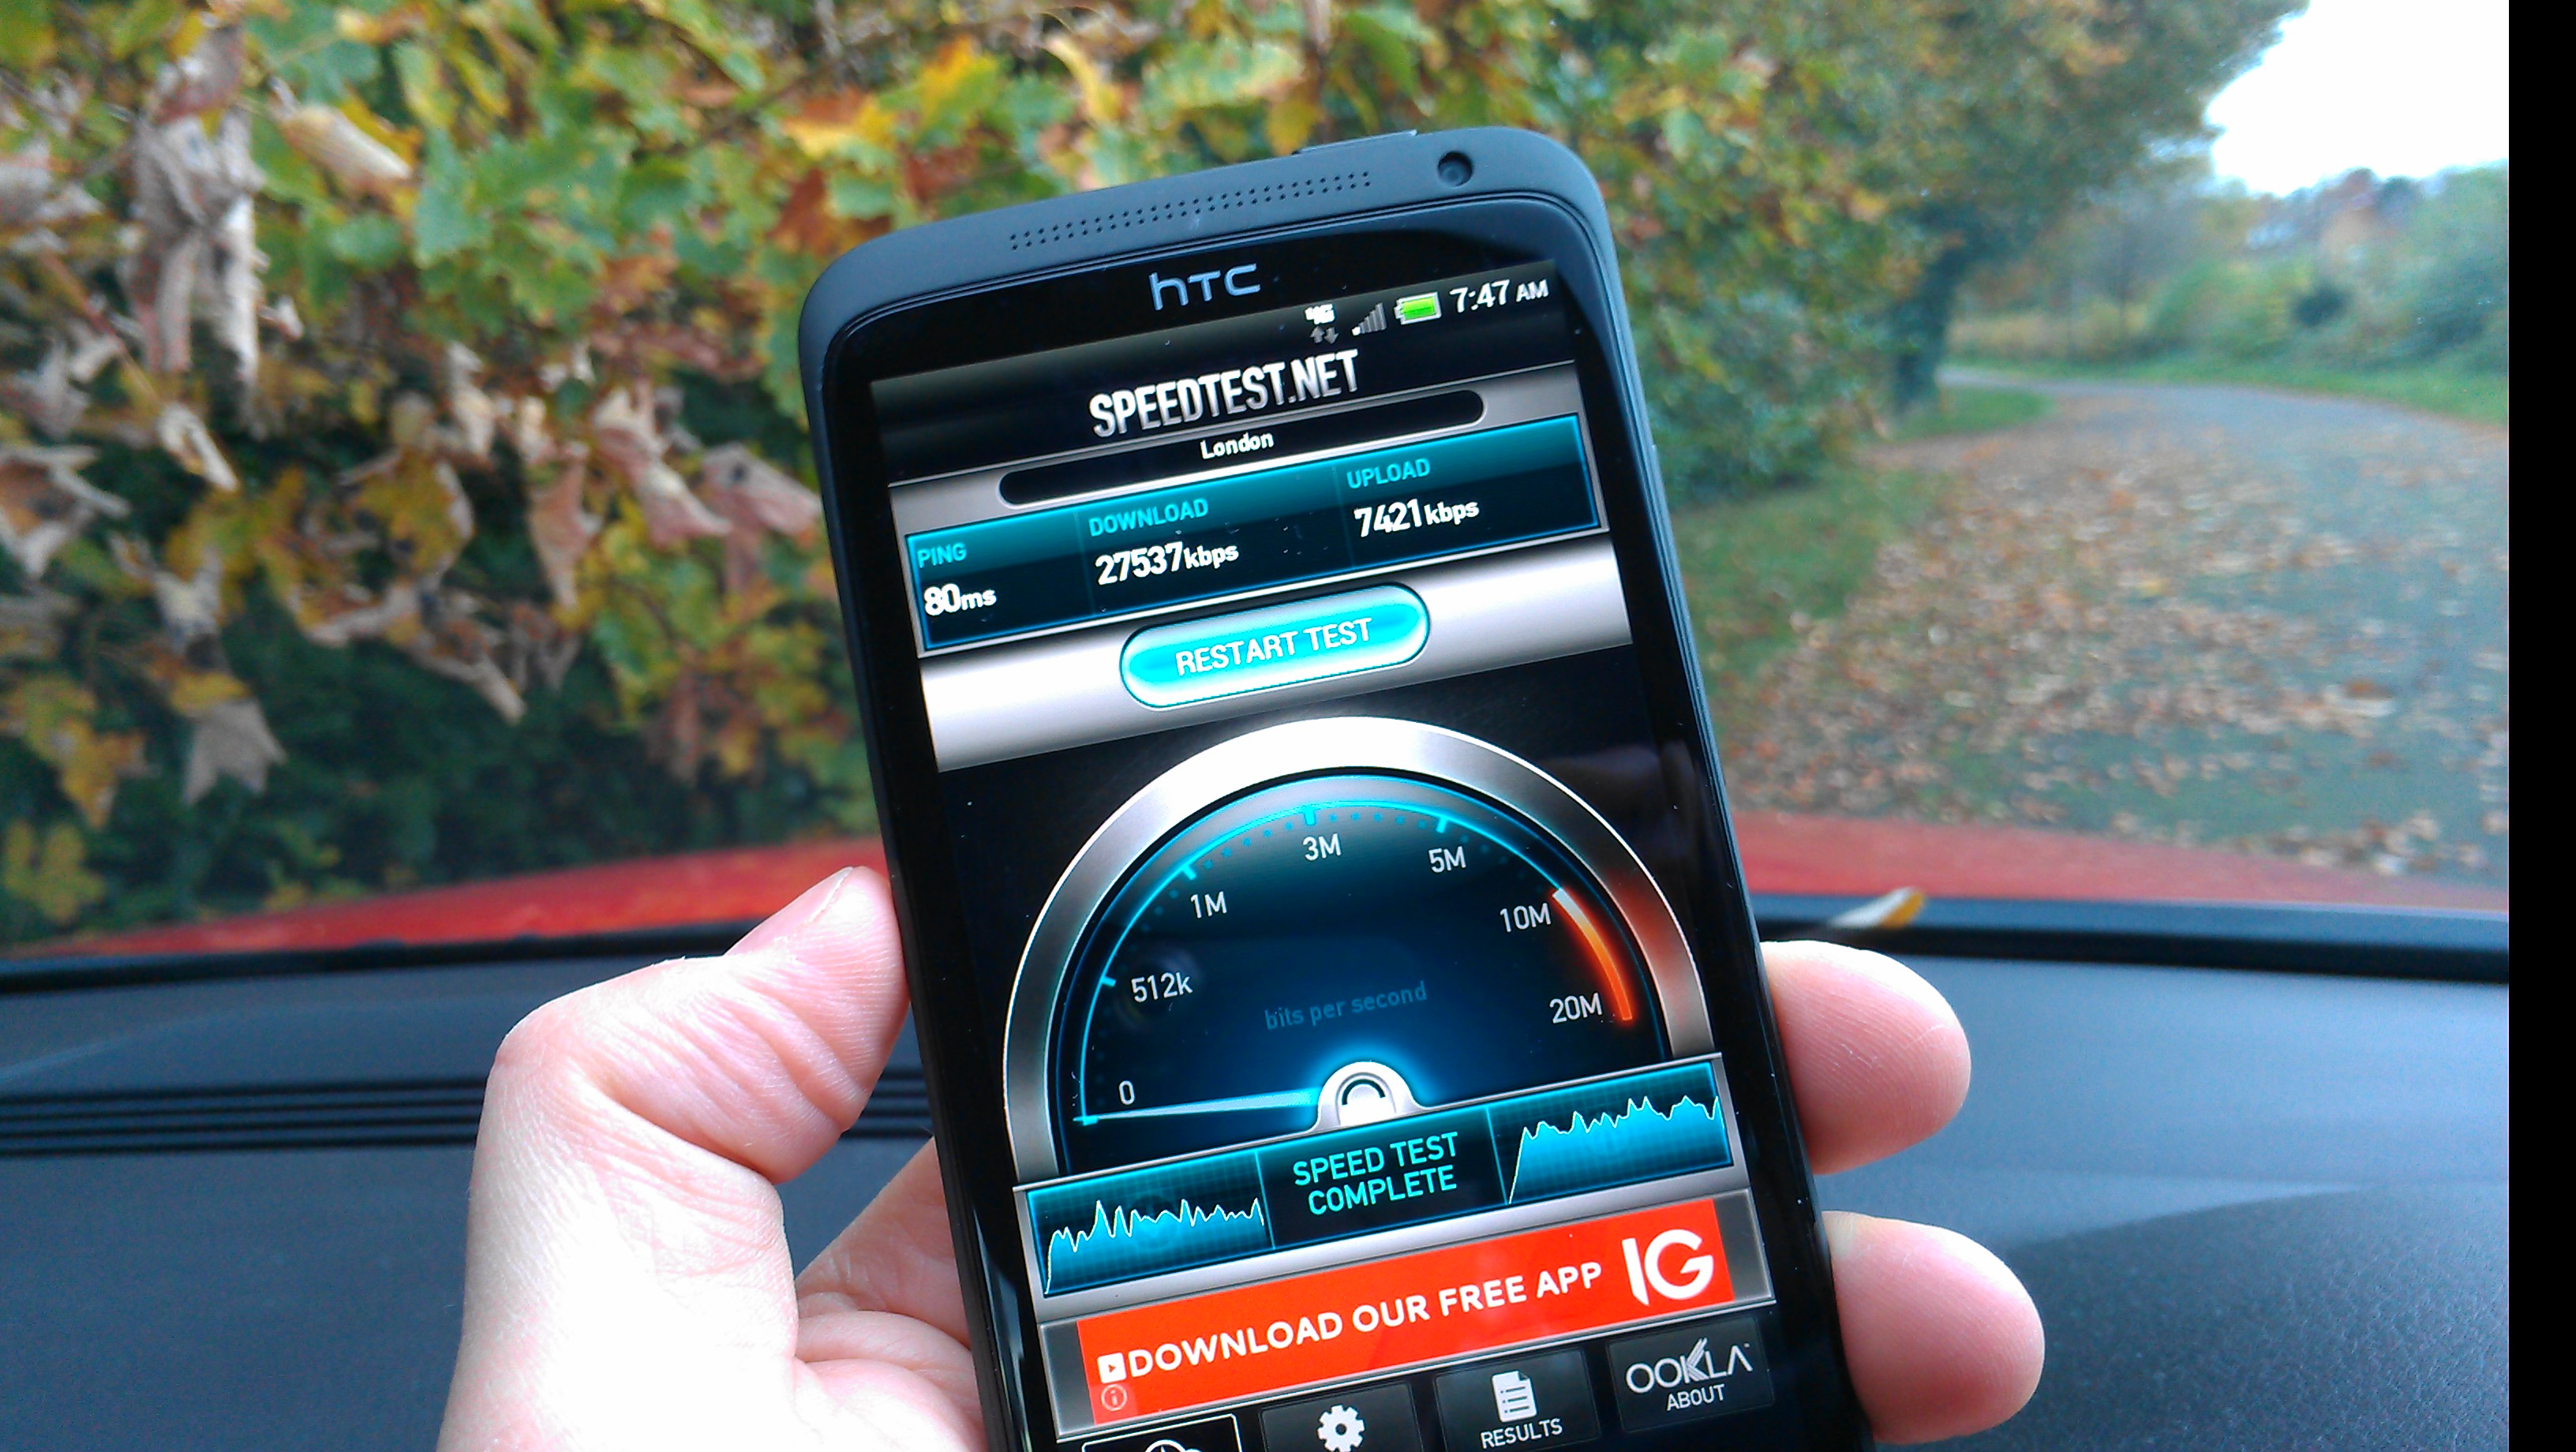 On test – How does EE 4G perform in the real world?